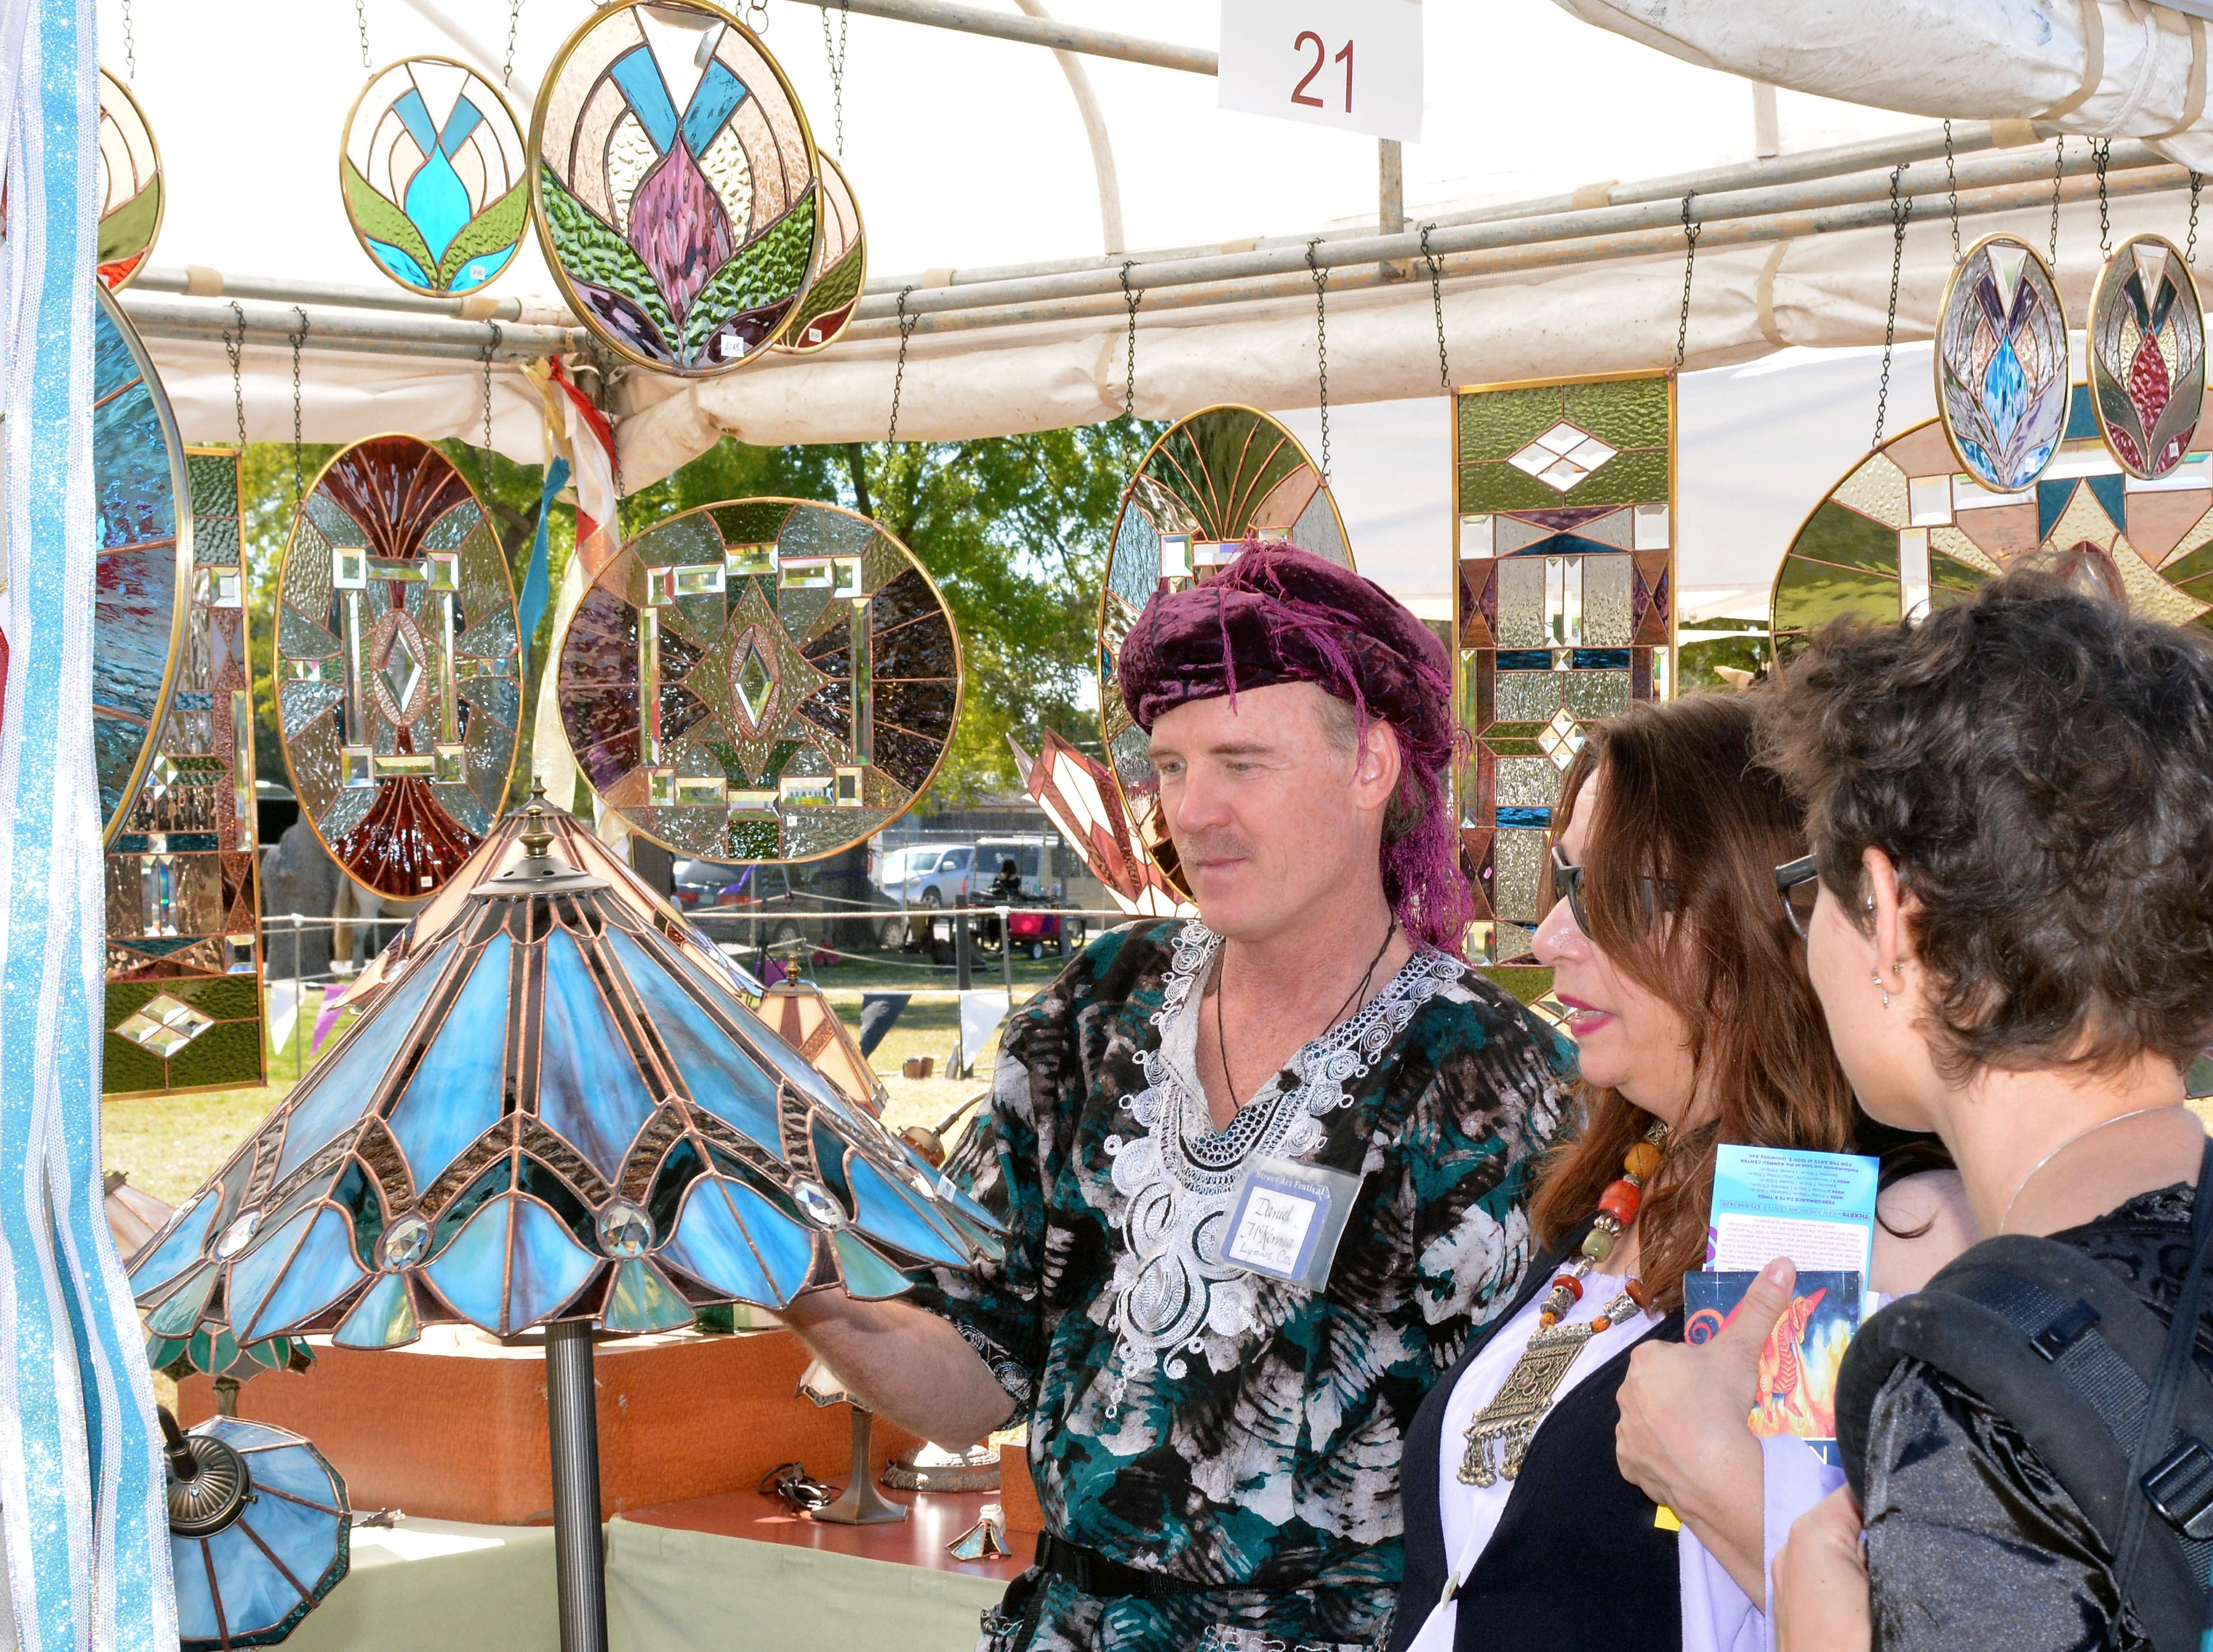 """Jamie Coryell and her daughter stop by """"Glass Originals,"""" one of the many vendors at the Renaissance Faire this year.  Photo taken 11/3/18."""